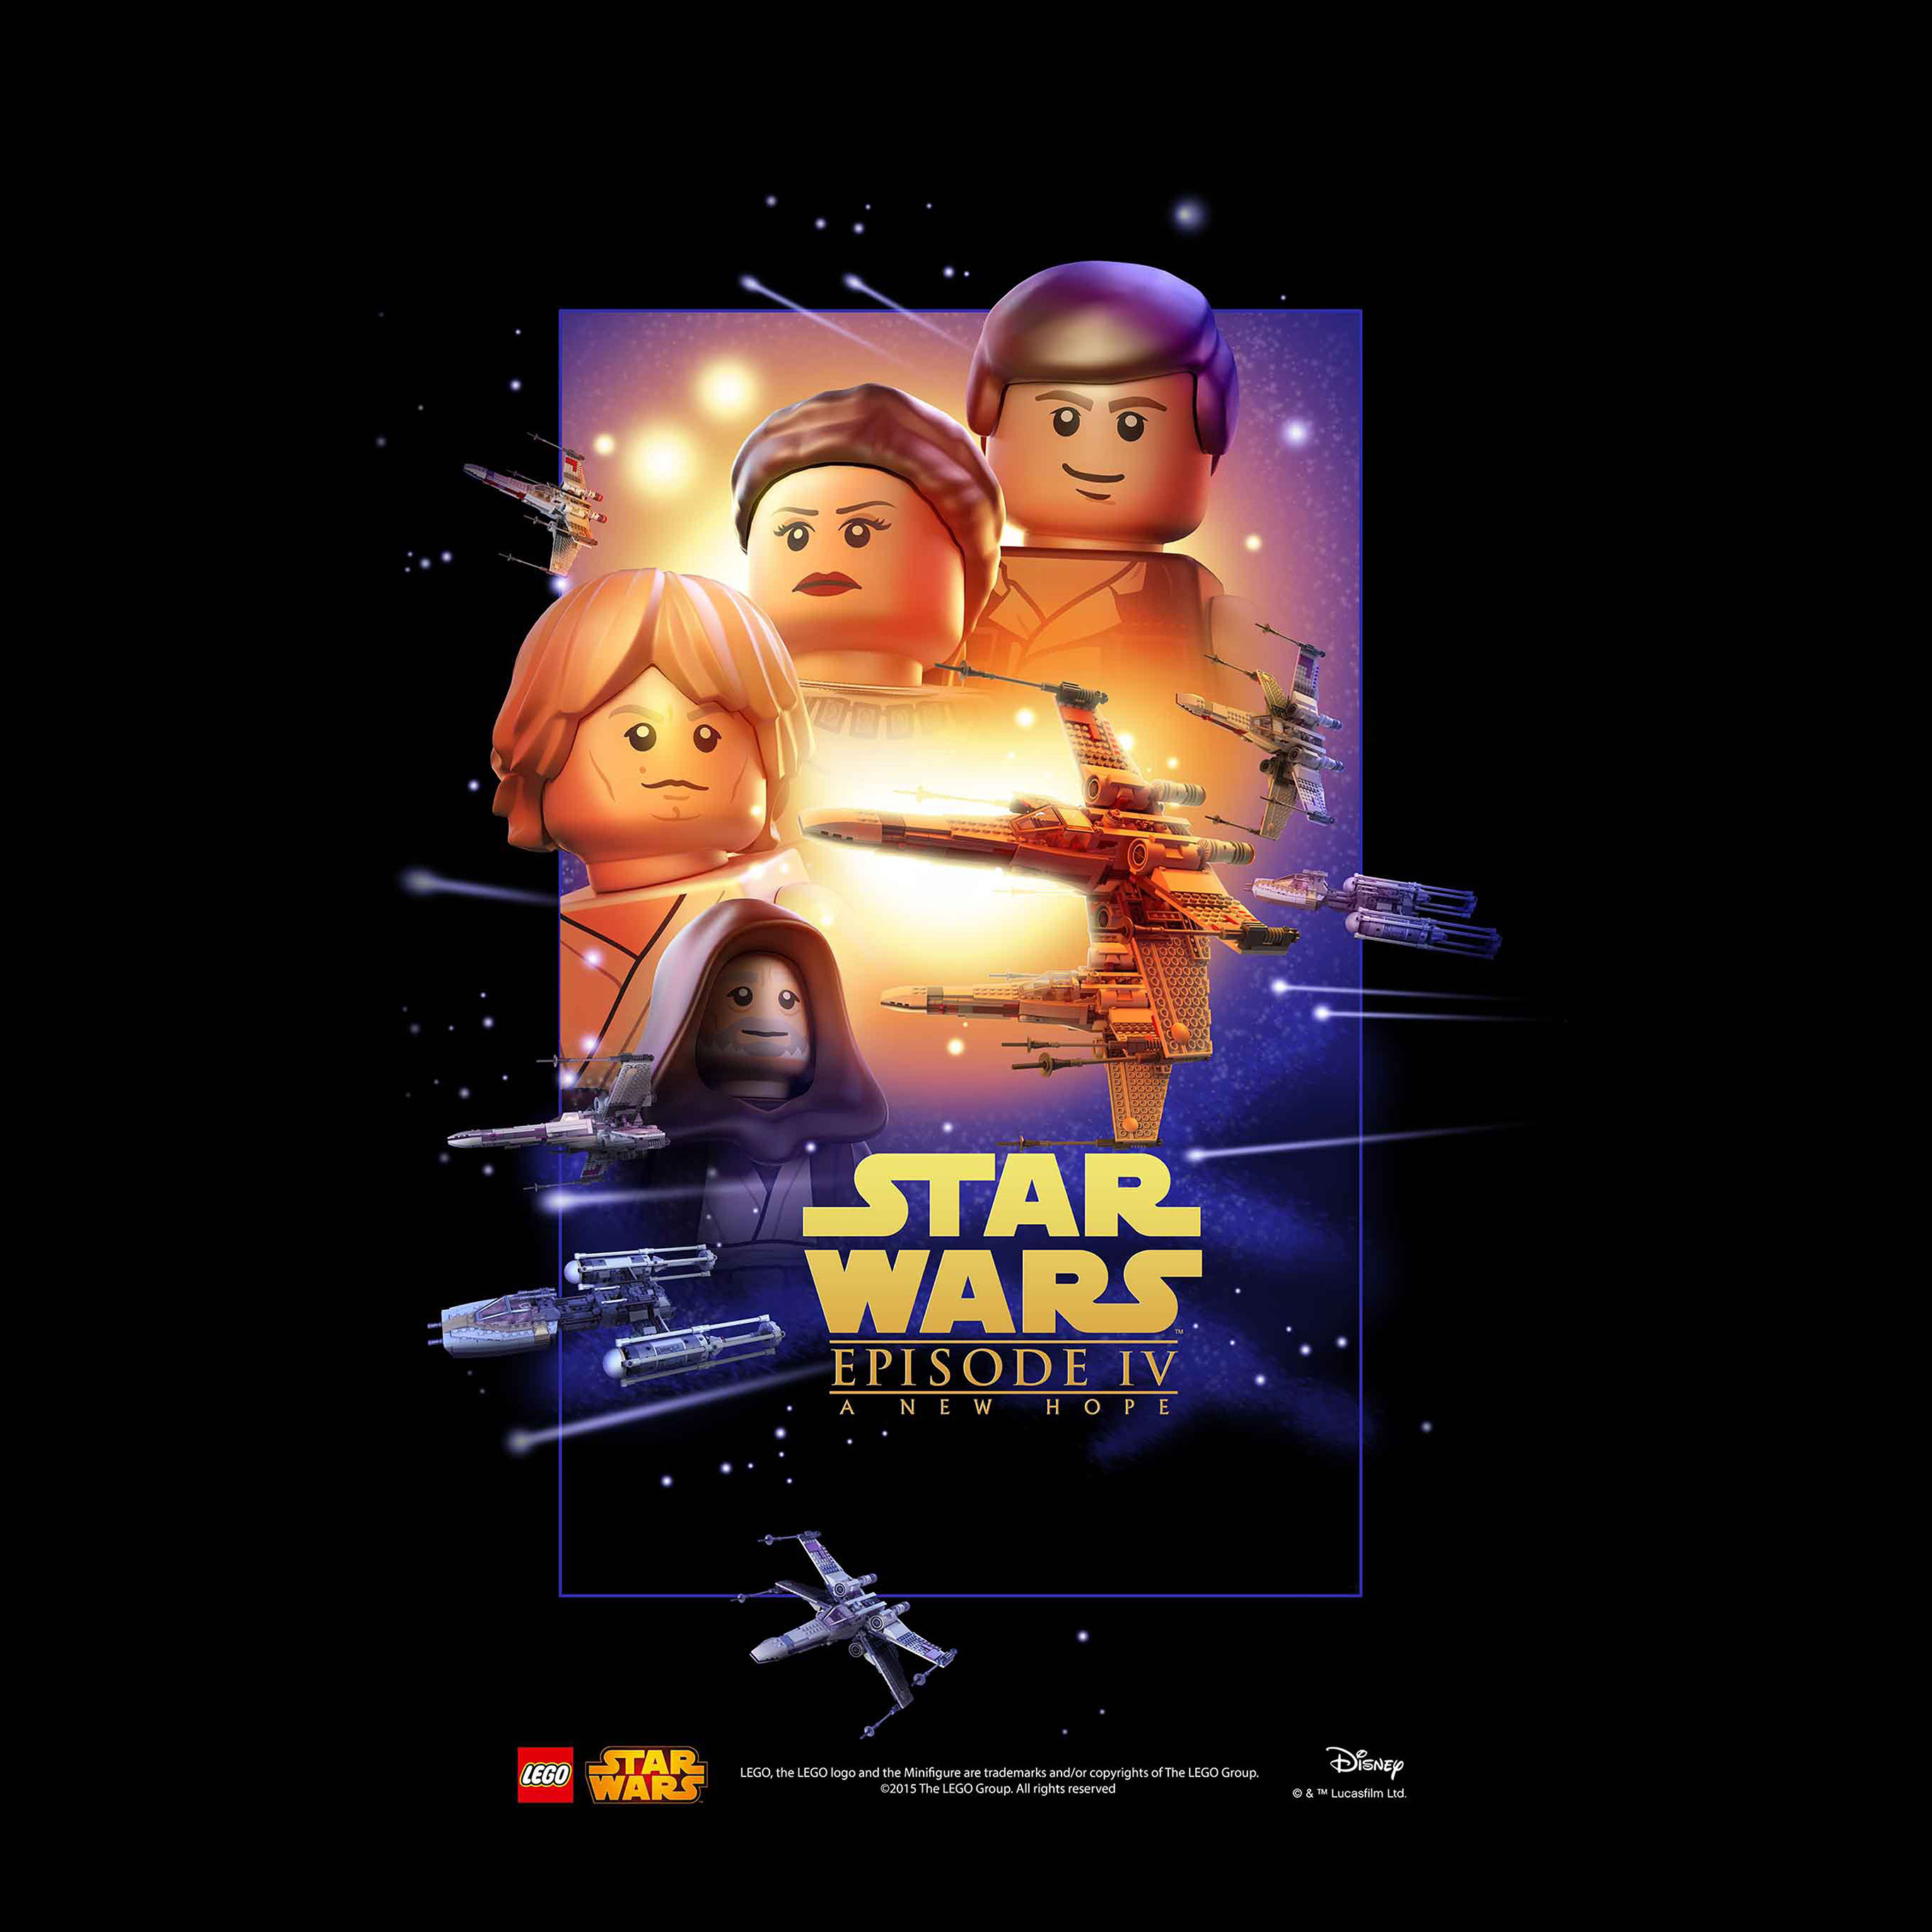 Ap27 Starwars Lego Episode 4 New Hope Art Film Wallpaper